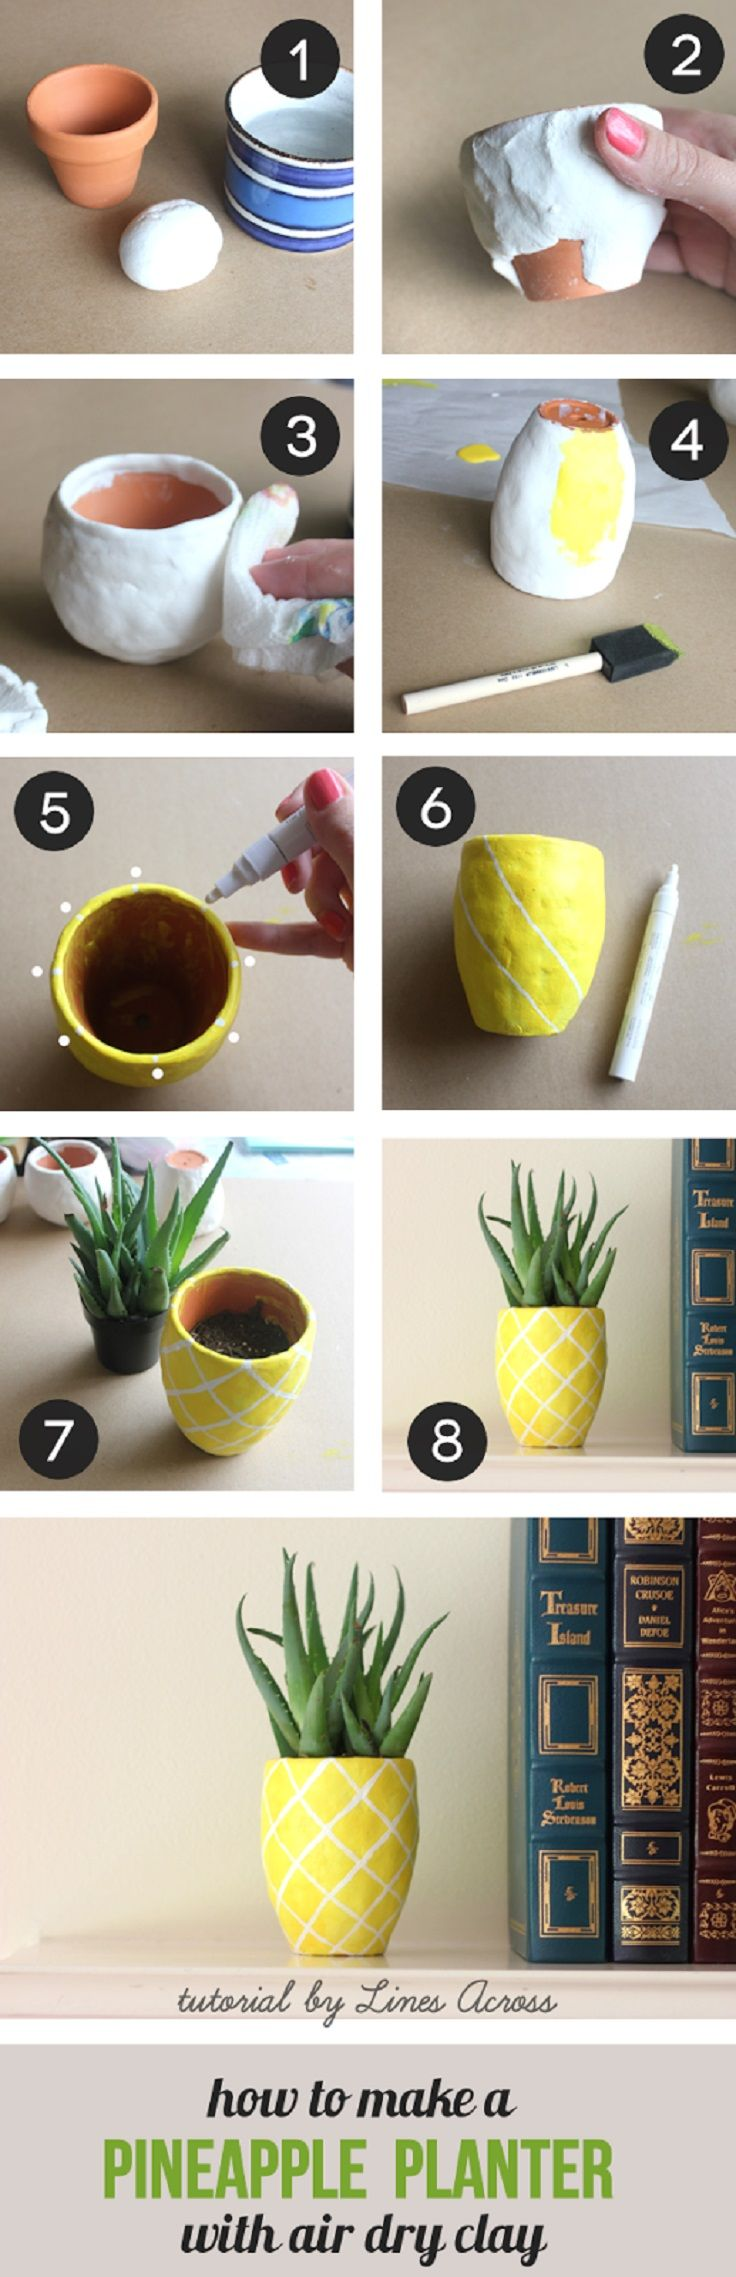 TOP 10 Fun DIY Projects with Succulent Plants Cute diy